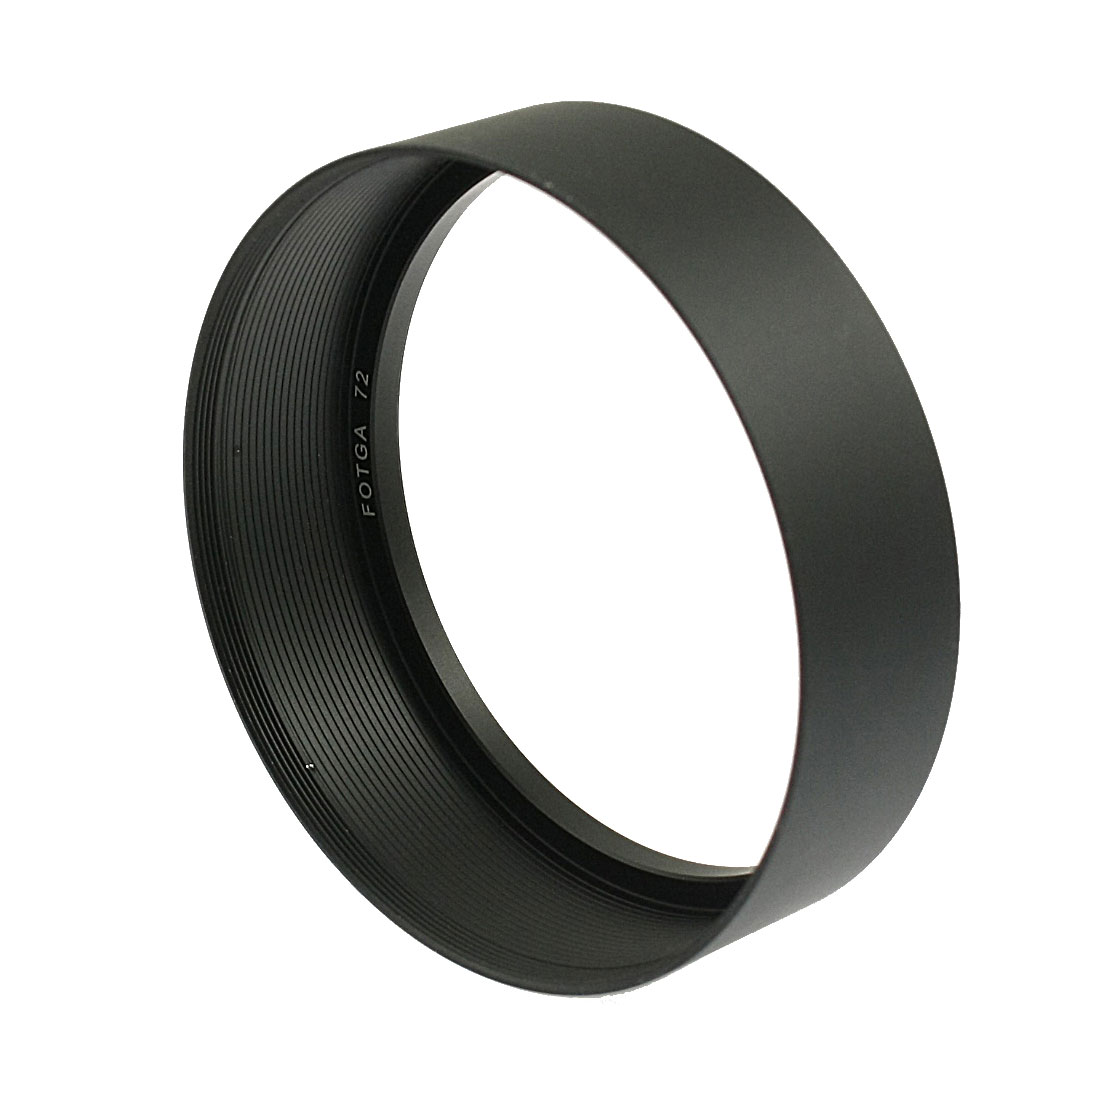 Filter Screw Mount 72mm Metal Lens Hood for Digital Camera